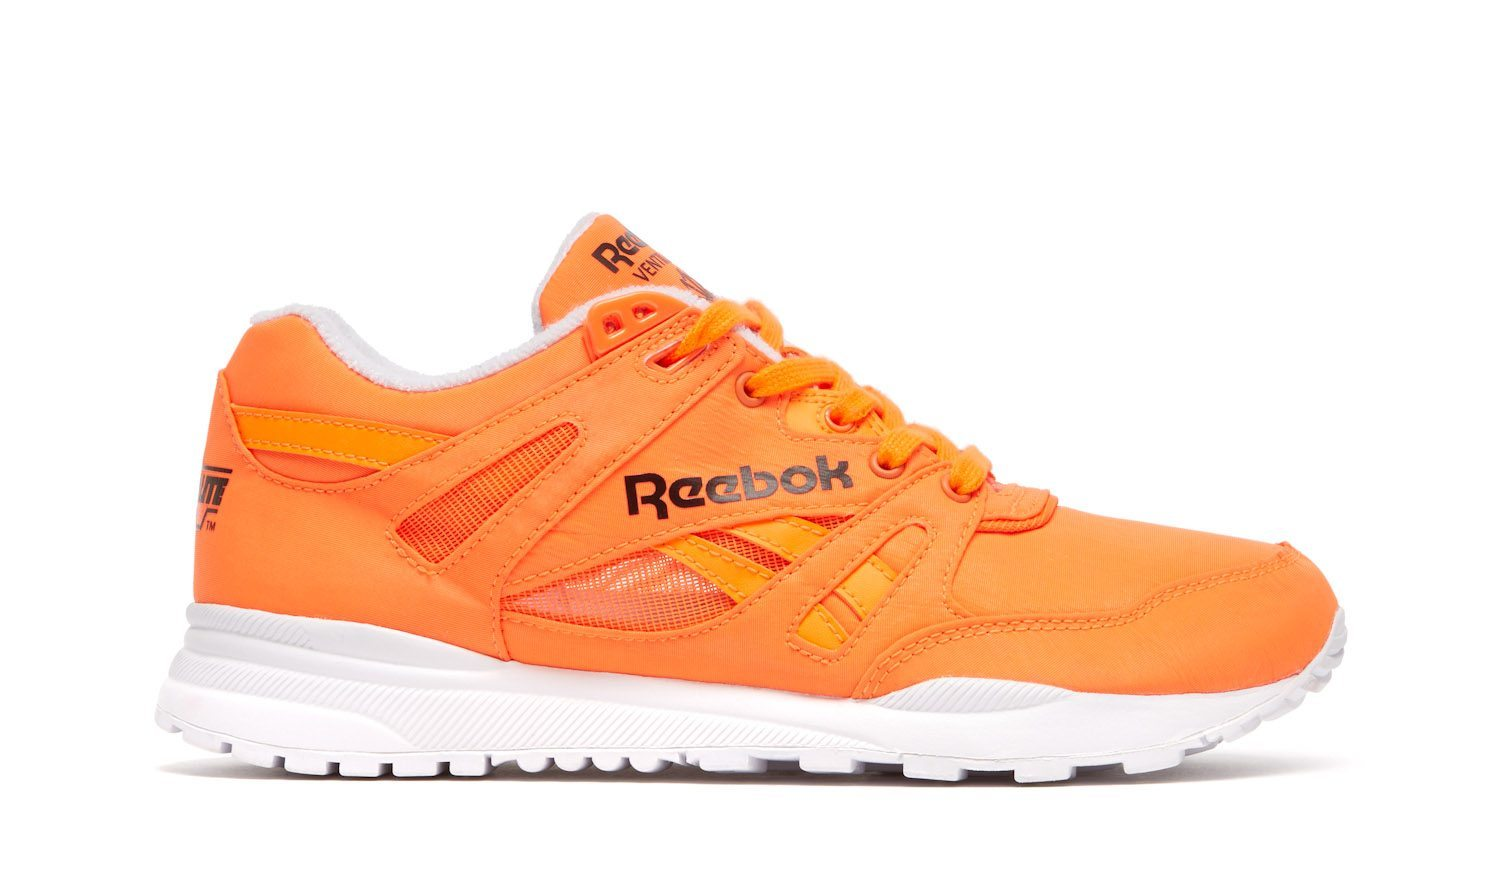 Reebok Classic Ventilator Day Glo Pack 2